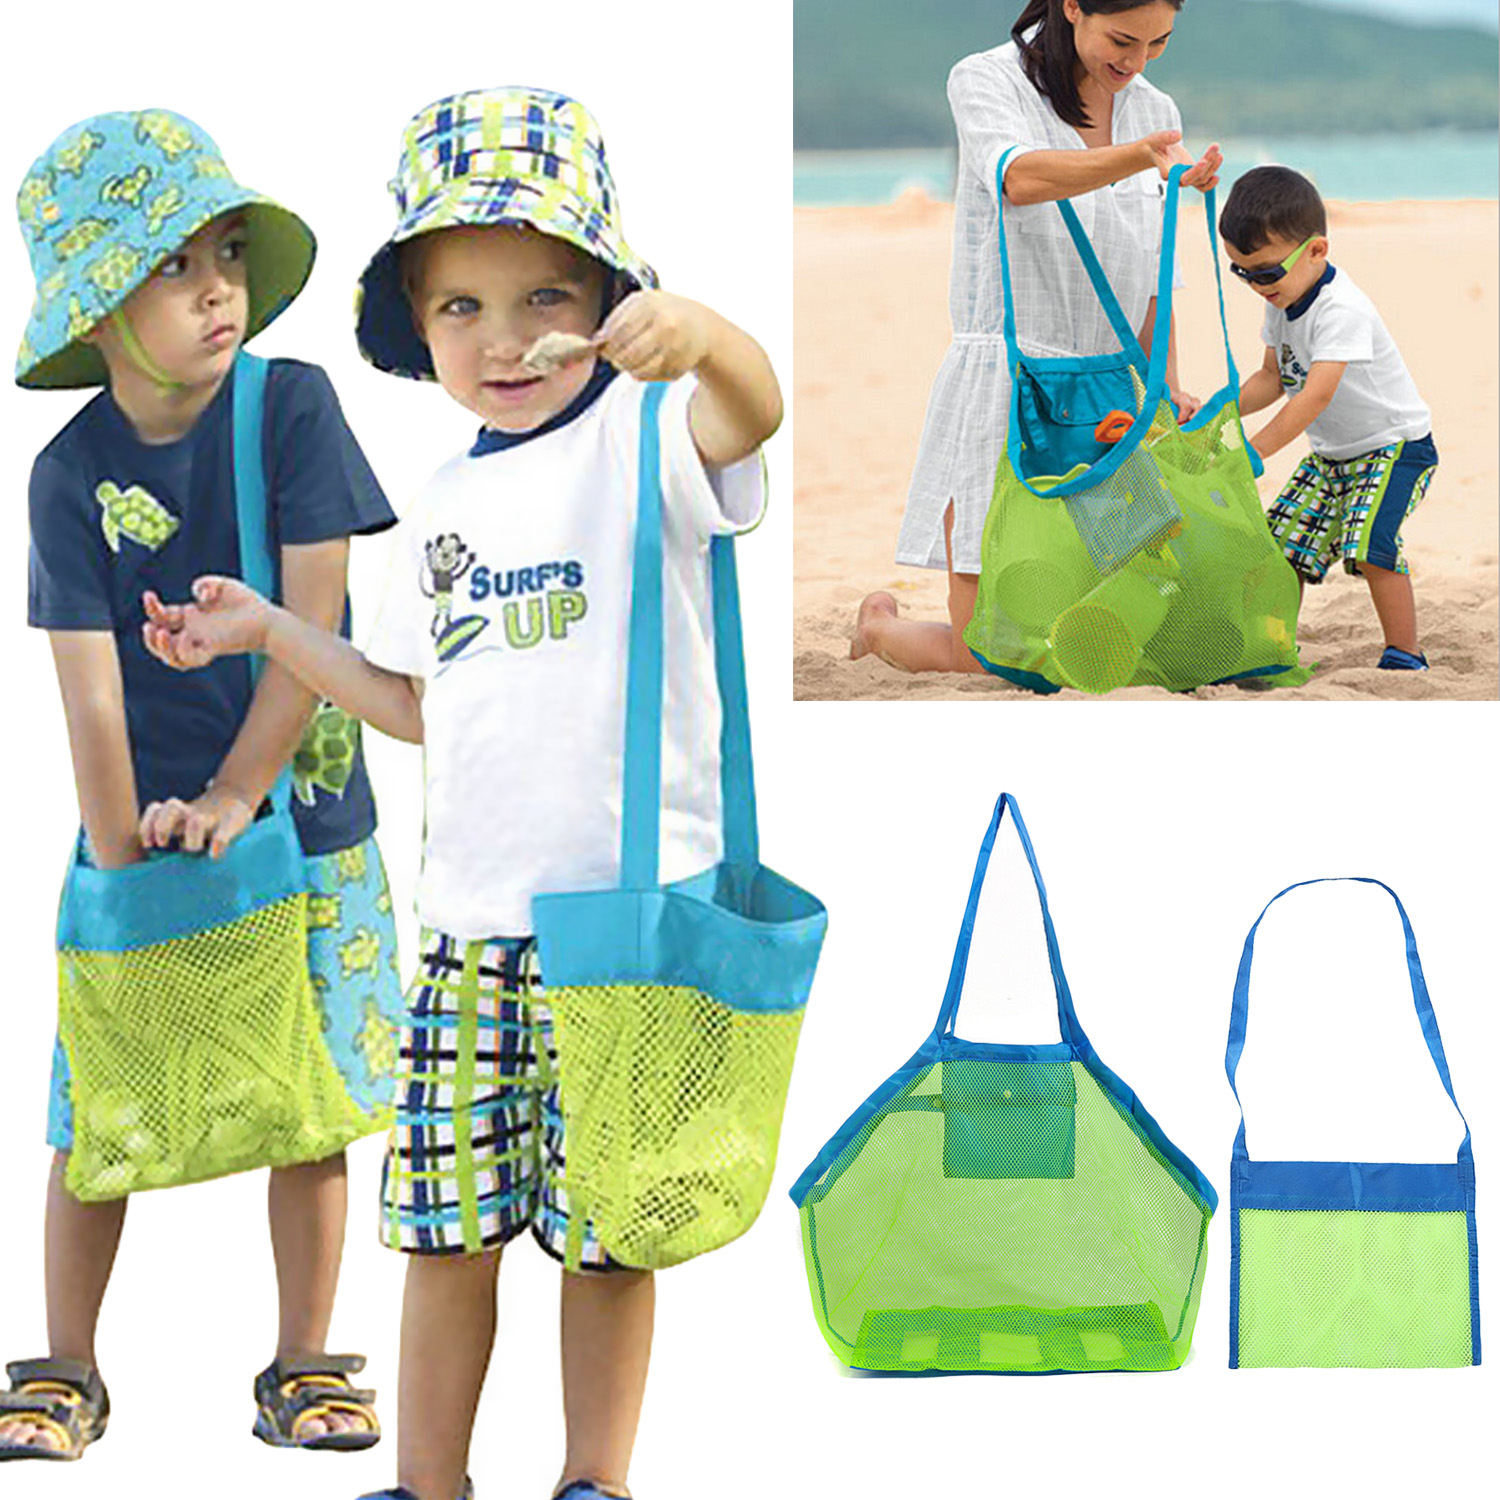 2PCS Portable Reusable Foldable Beach Mesh Tote Bags For Toys Towels Shell Swimsuits Sunglasses Goggles Snacks Size Large Small